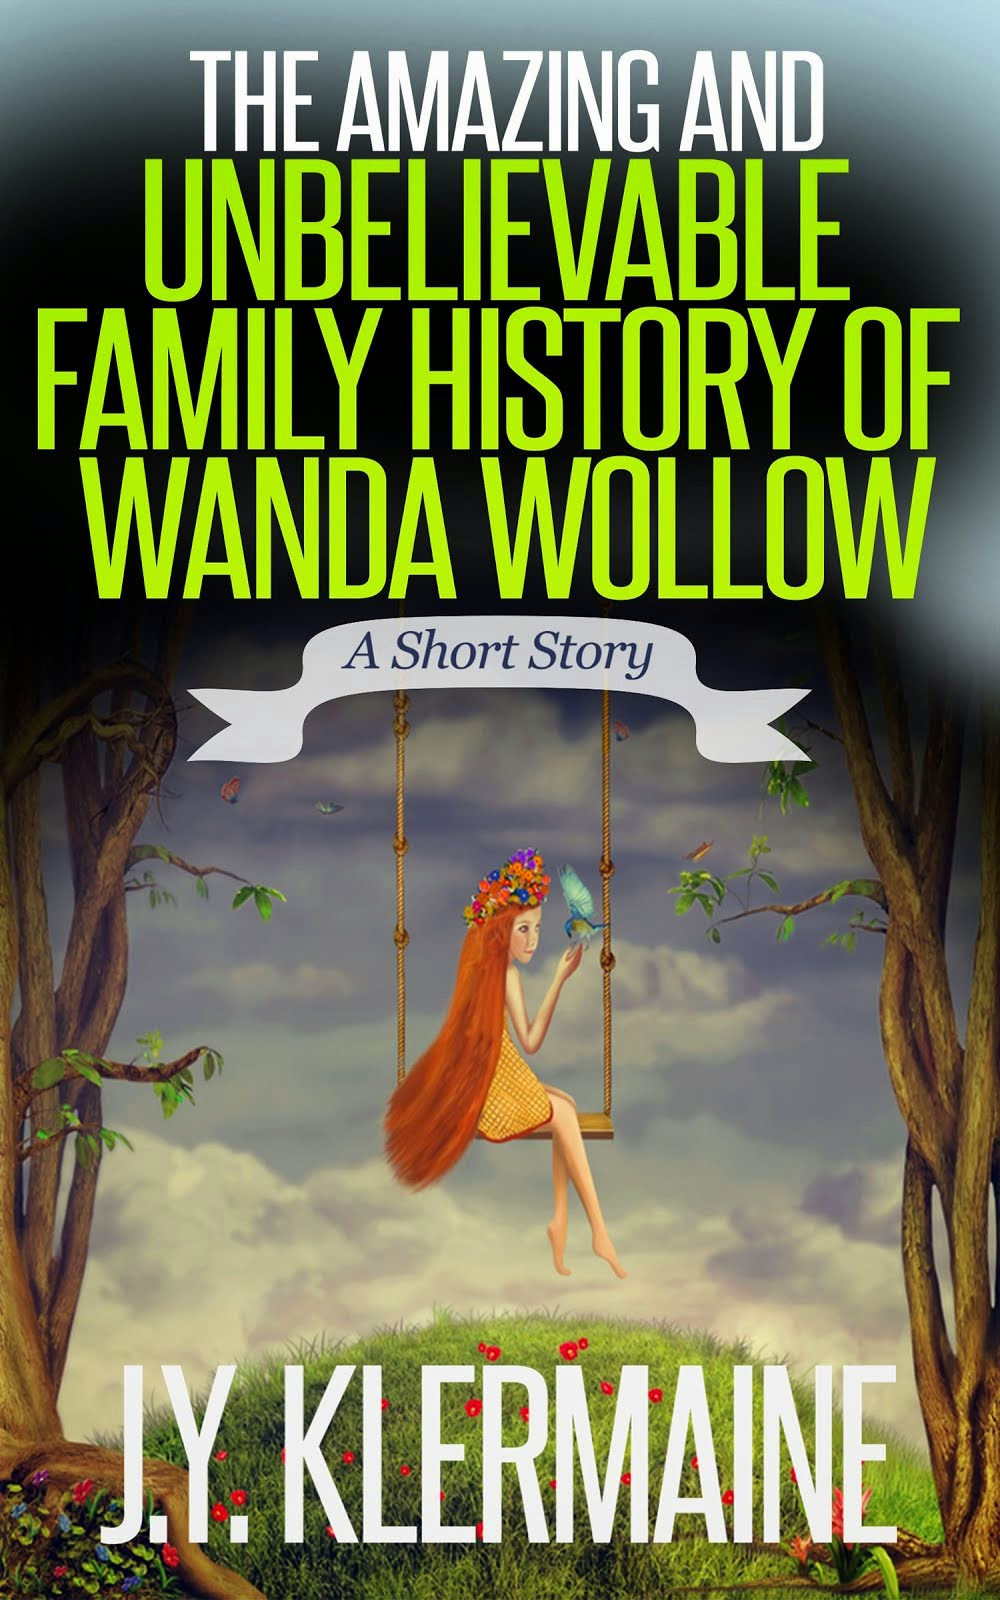 Get this fun short story for free!